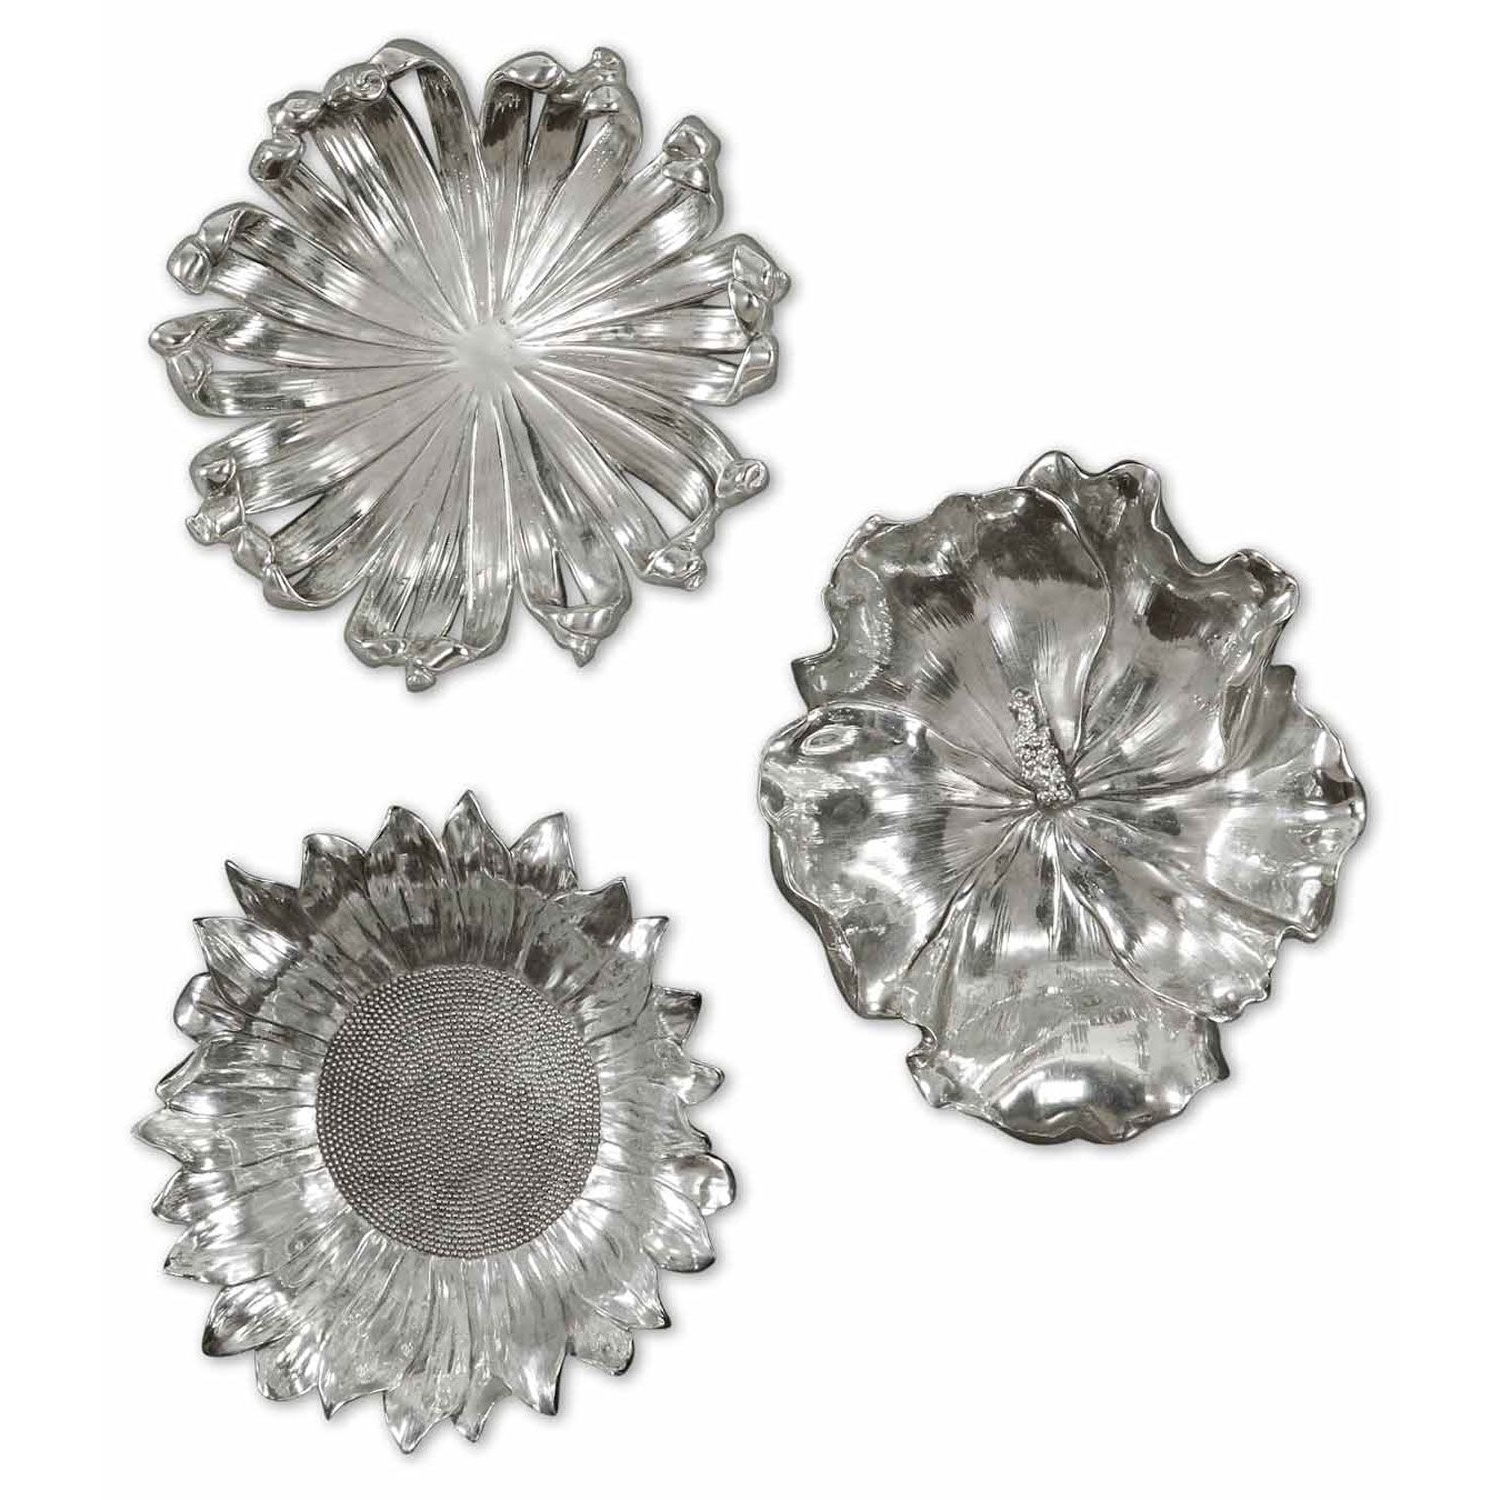 Newest Silver Flowers Metal Wall Art, Set Of Three Uttermost Wall Sculpture Pertaining To Silver Metal Wall Art (View 2 of 15)